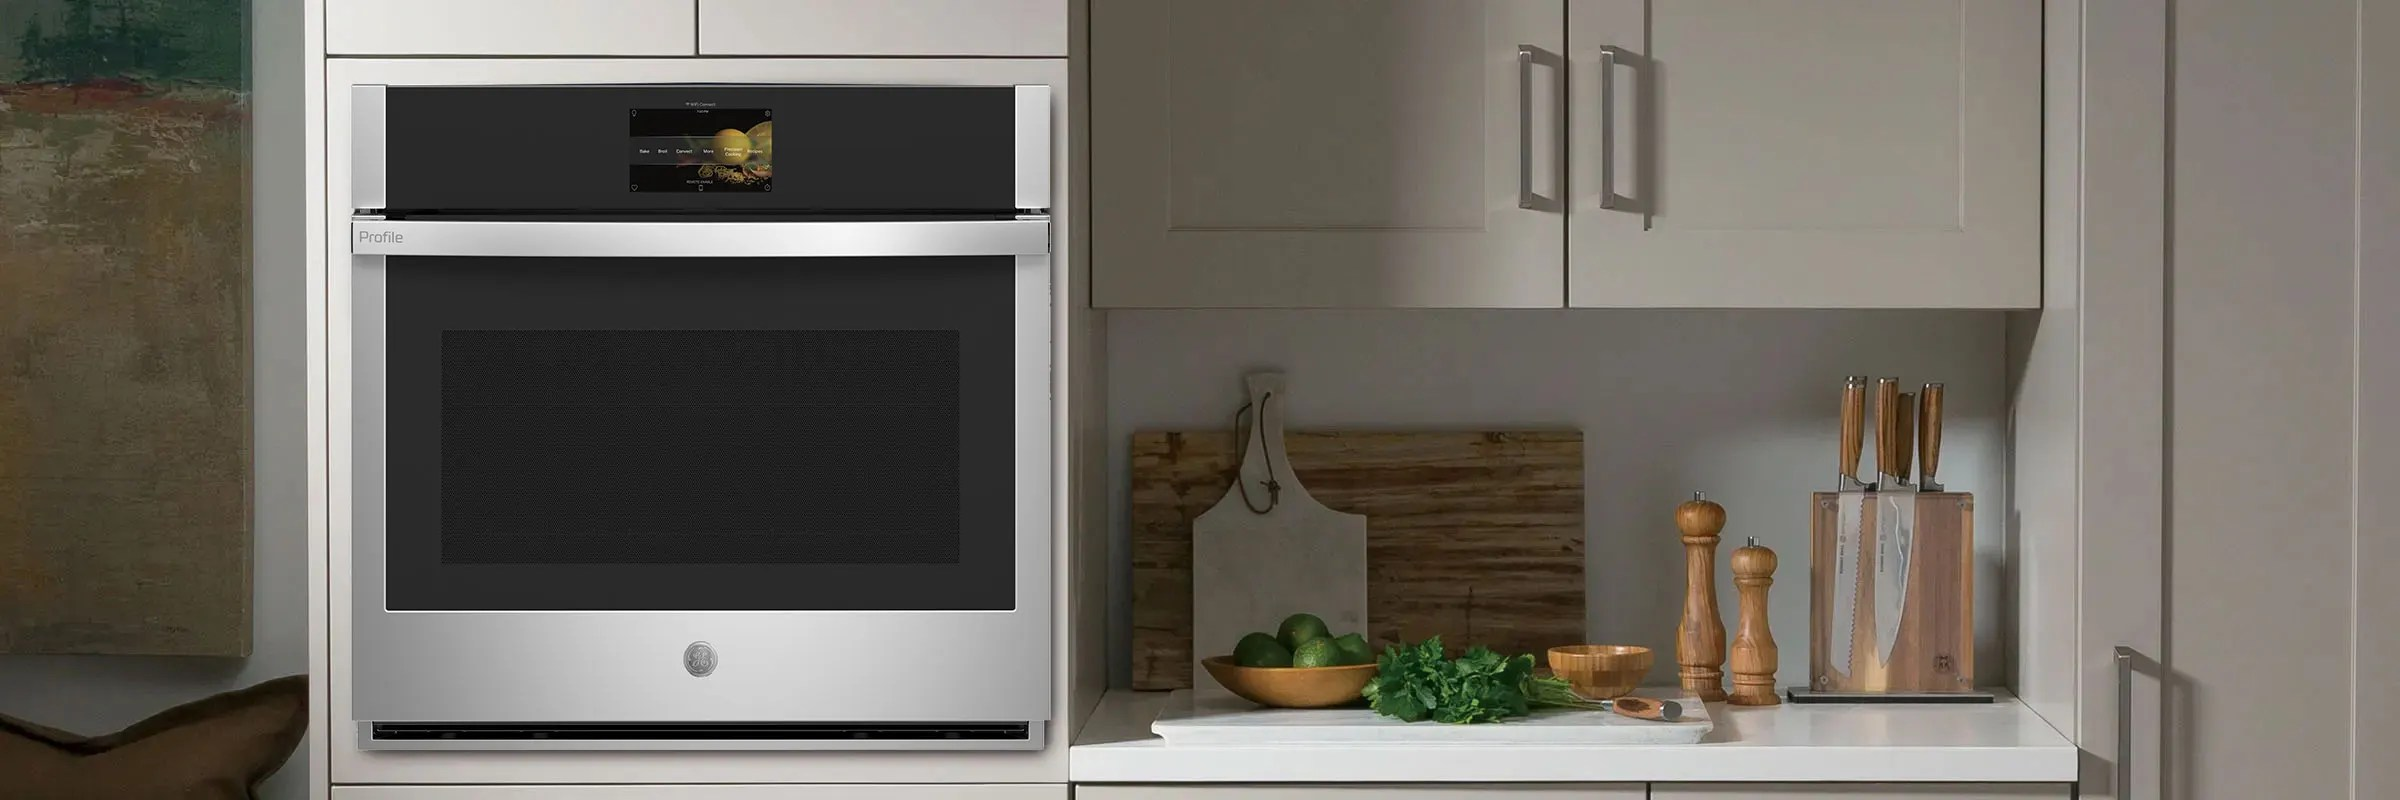 double wall ovens ge appliances